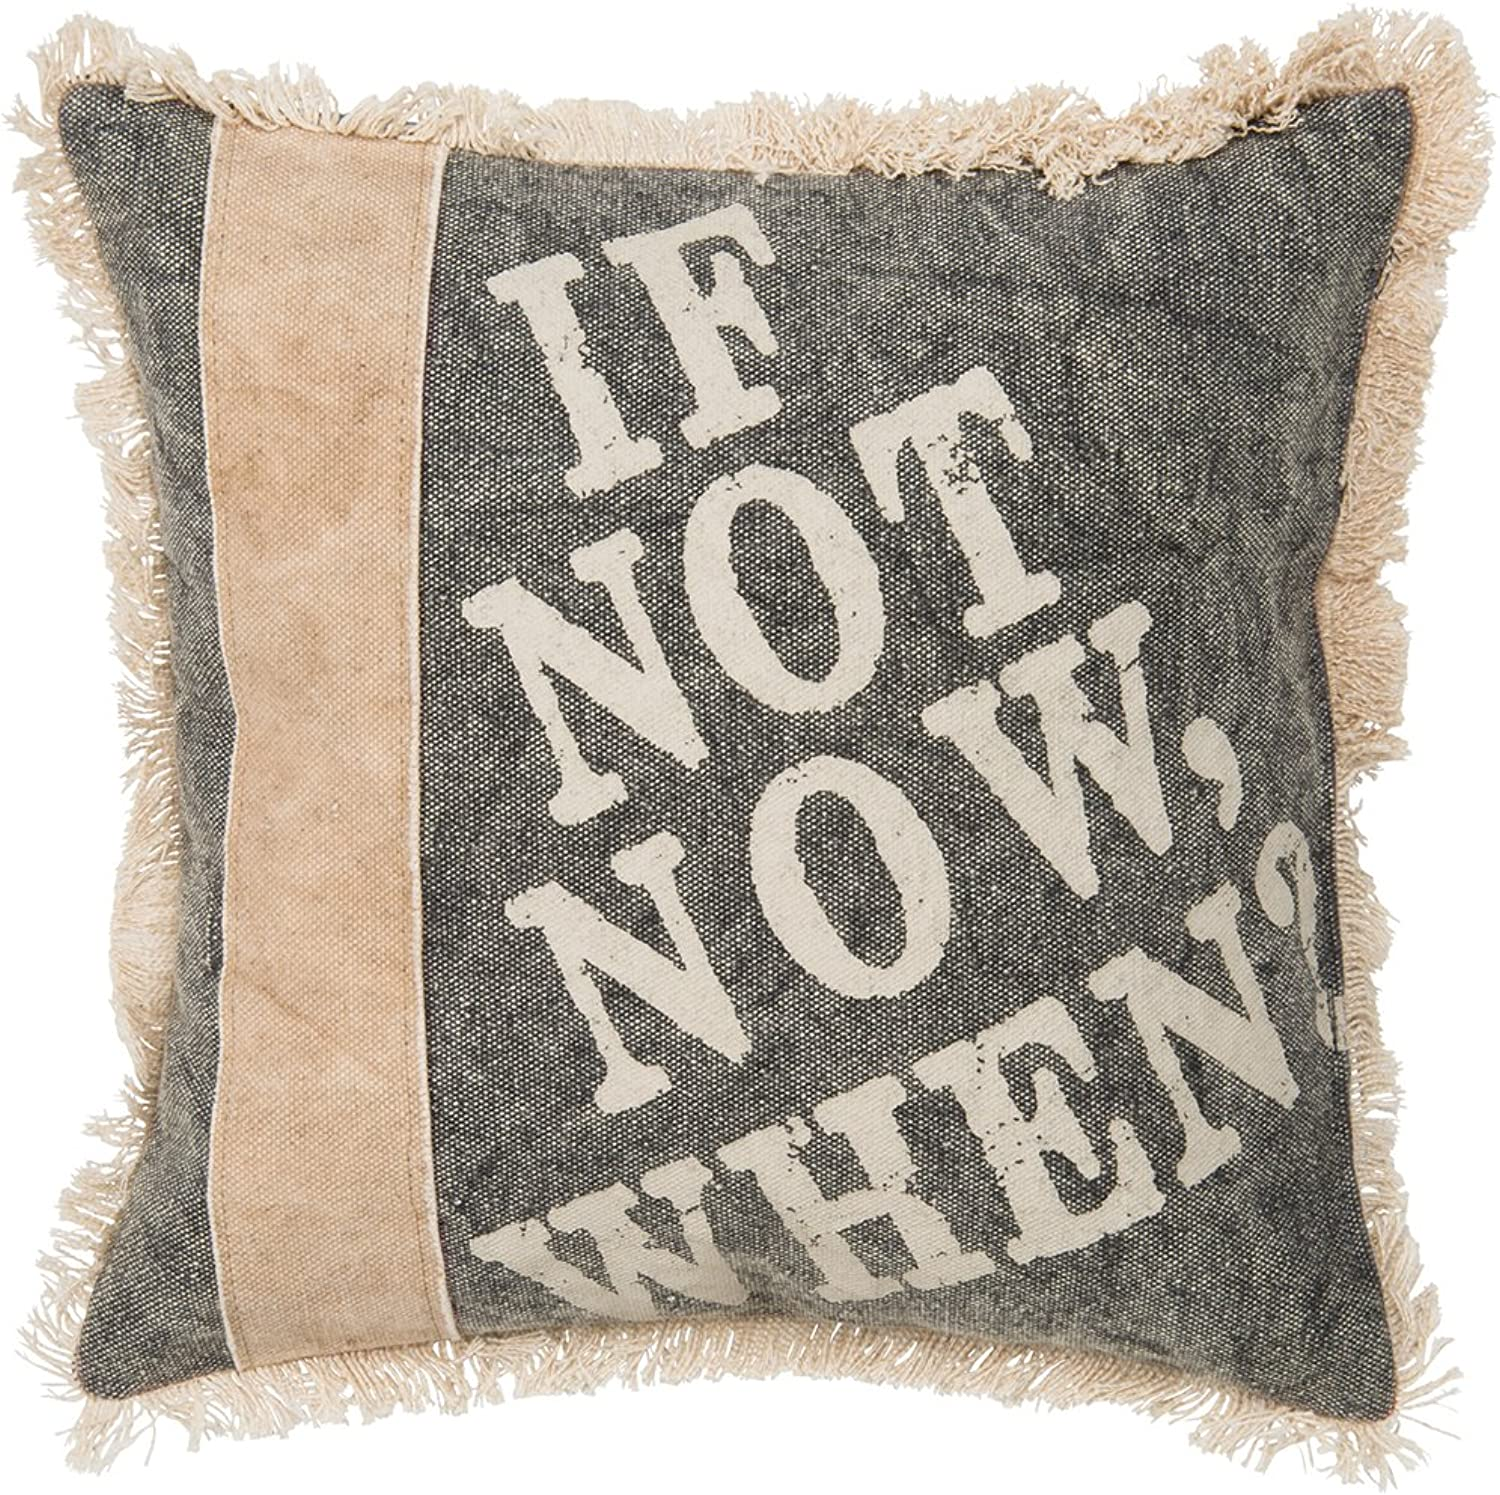 Primitives by Kathy Cotton If Not Now When Canvas Throw Pillow, 10-Inch Square